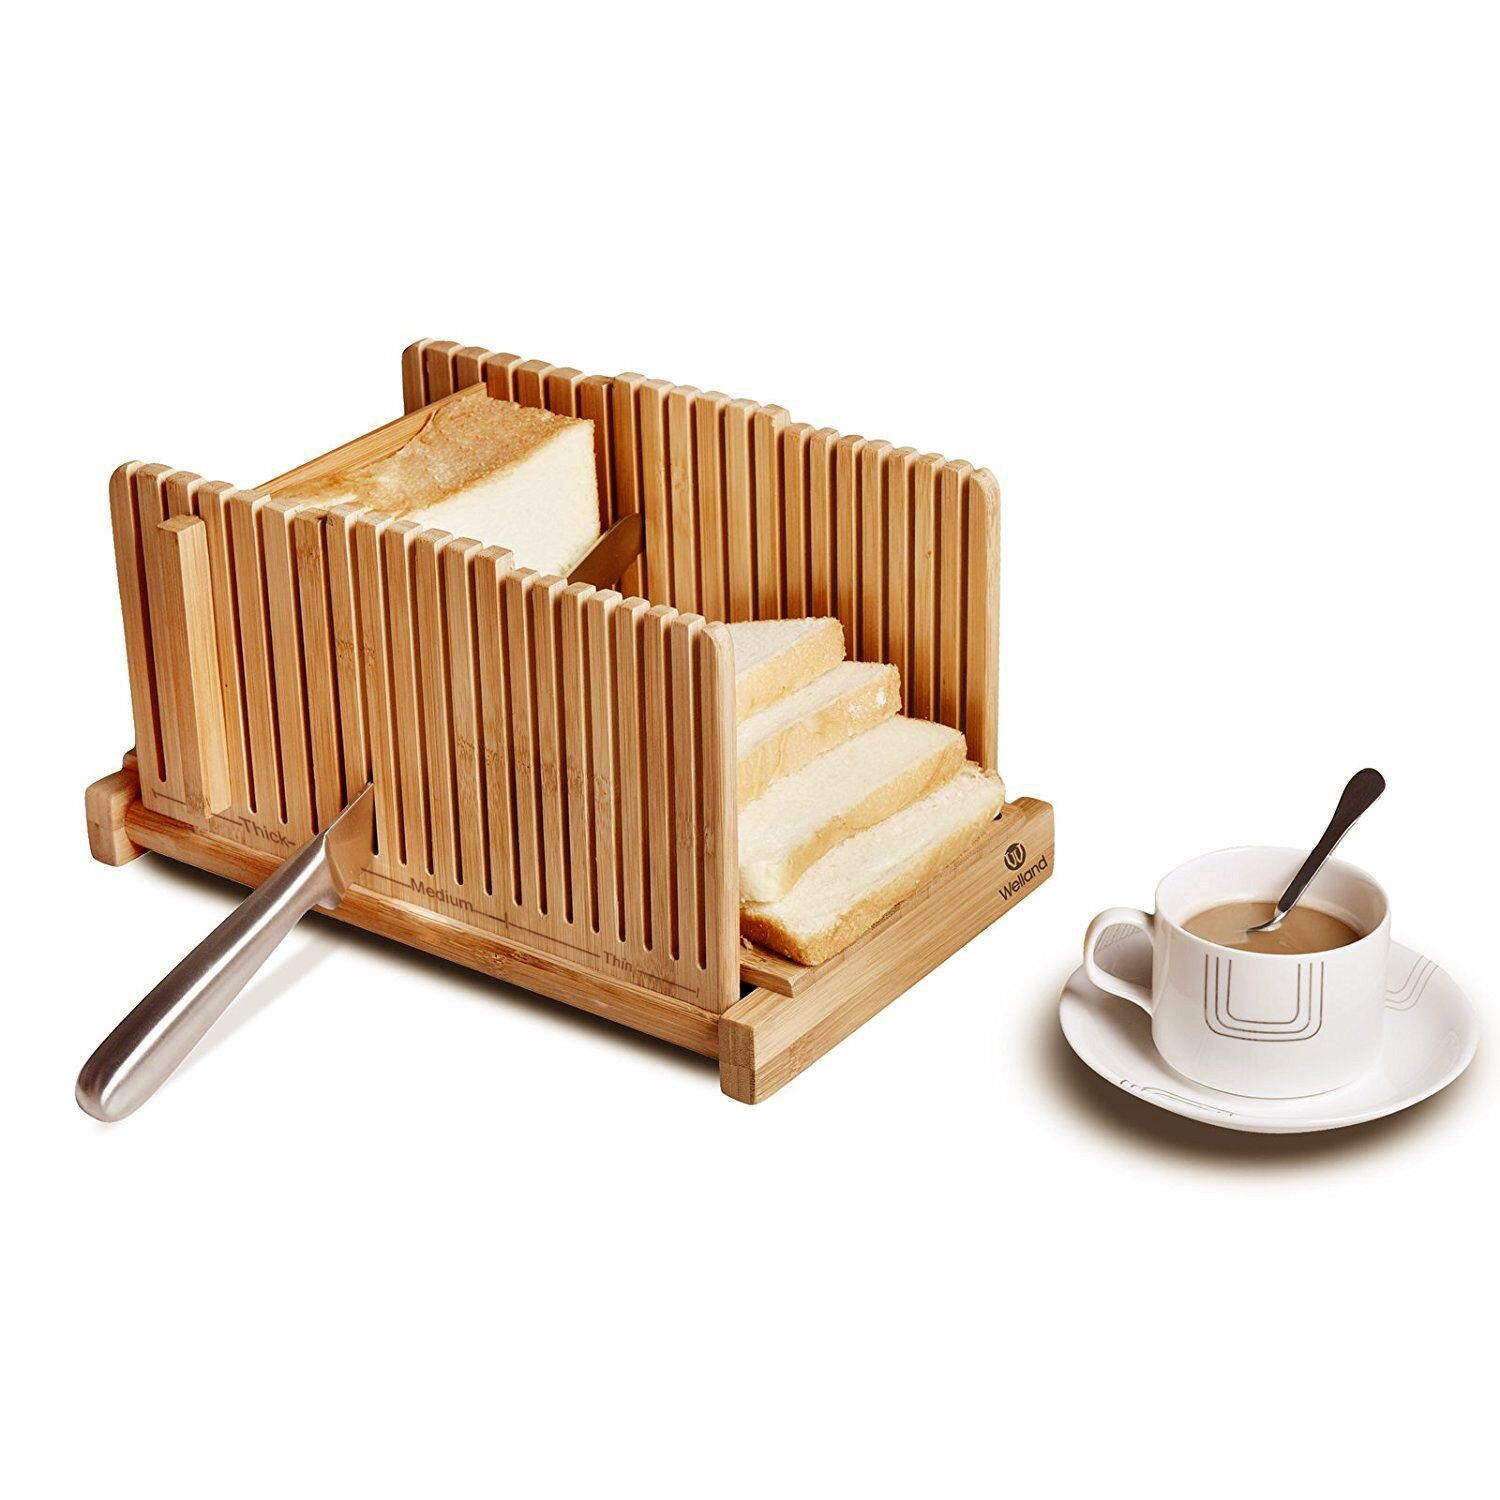 WELLAND Bamboo Bread Slicer Guide, Foldable Wooden Toast Cutting Guide with 3 Slicing Sizes for Homemade Breads, Loaf Cakes